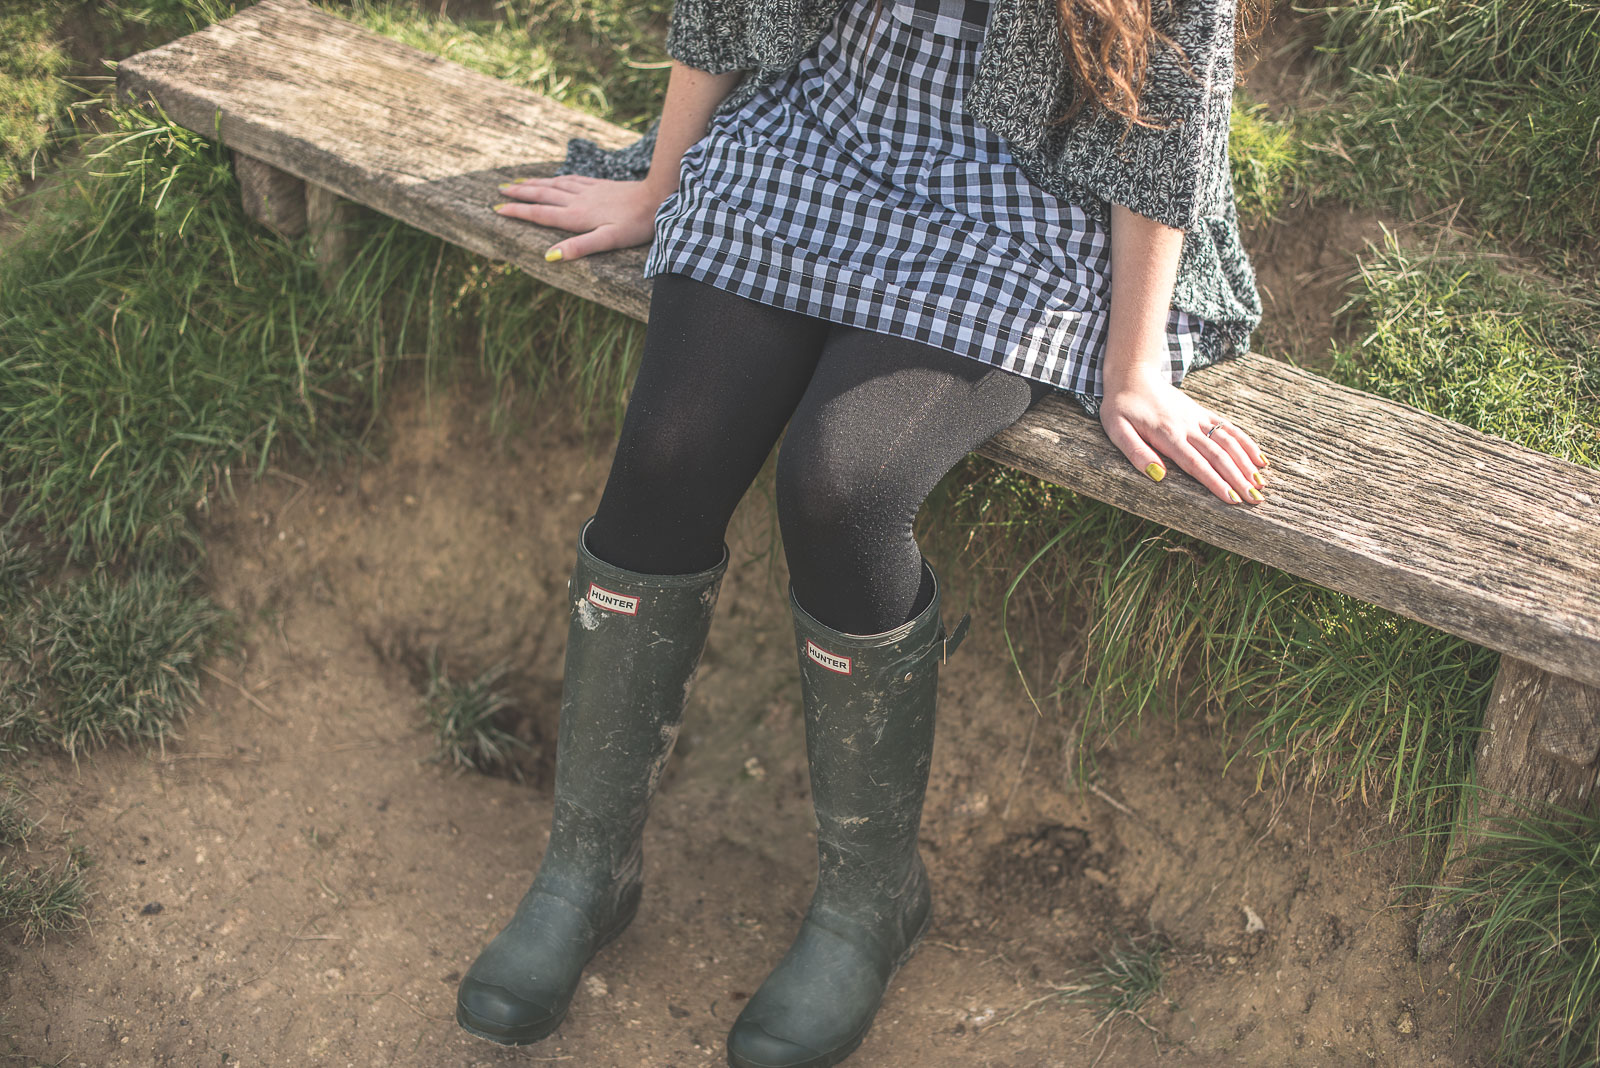 Gingham dress and wellies on a country walk